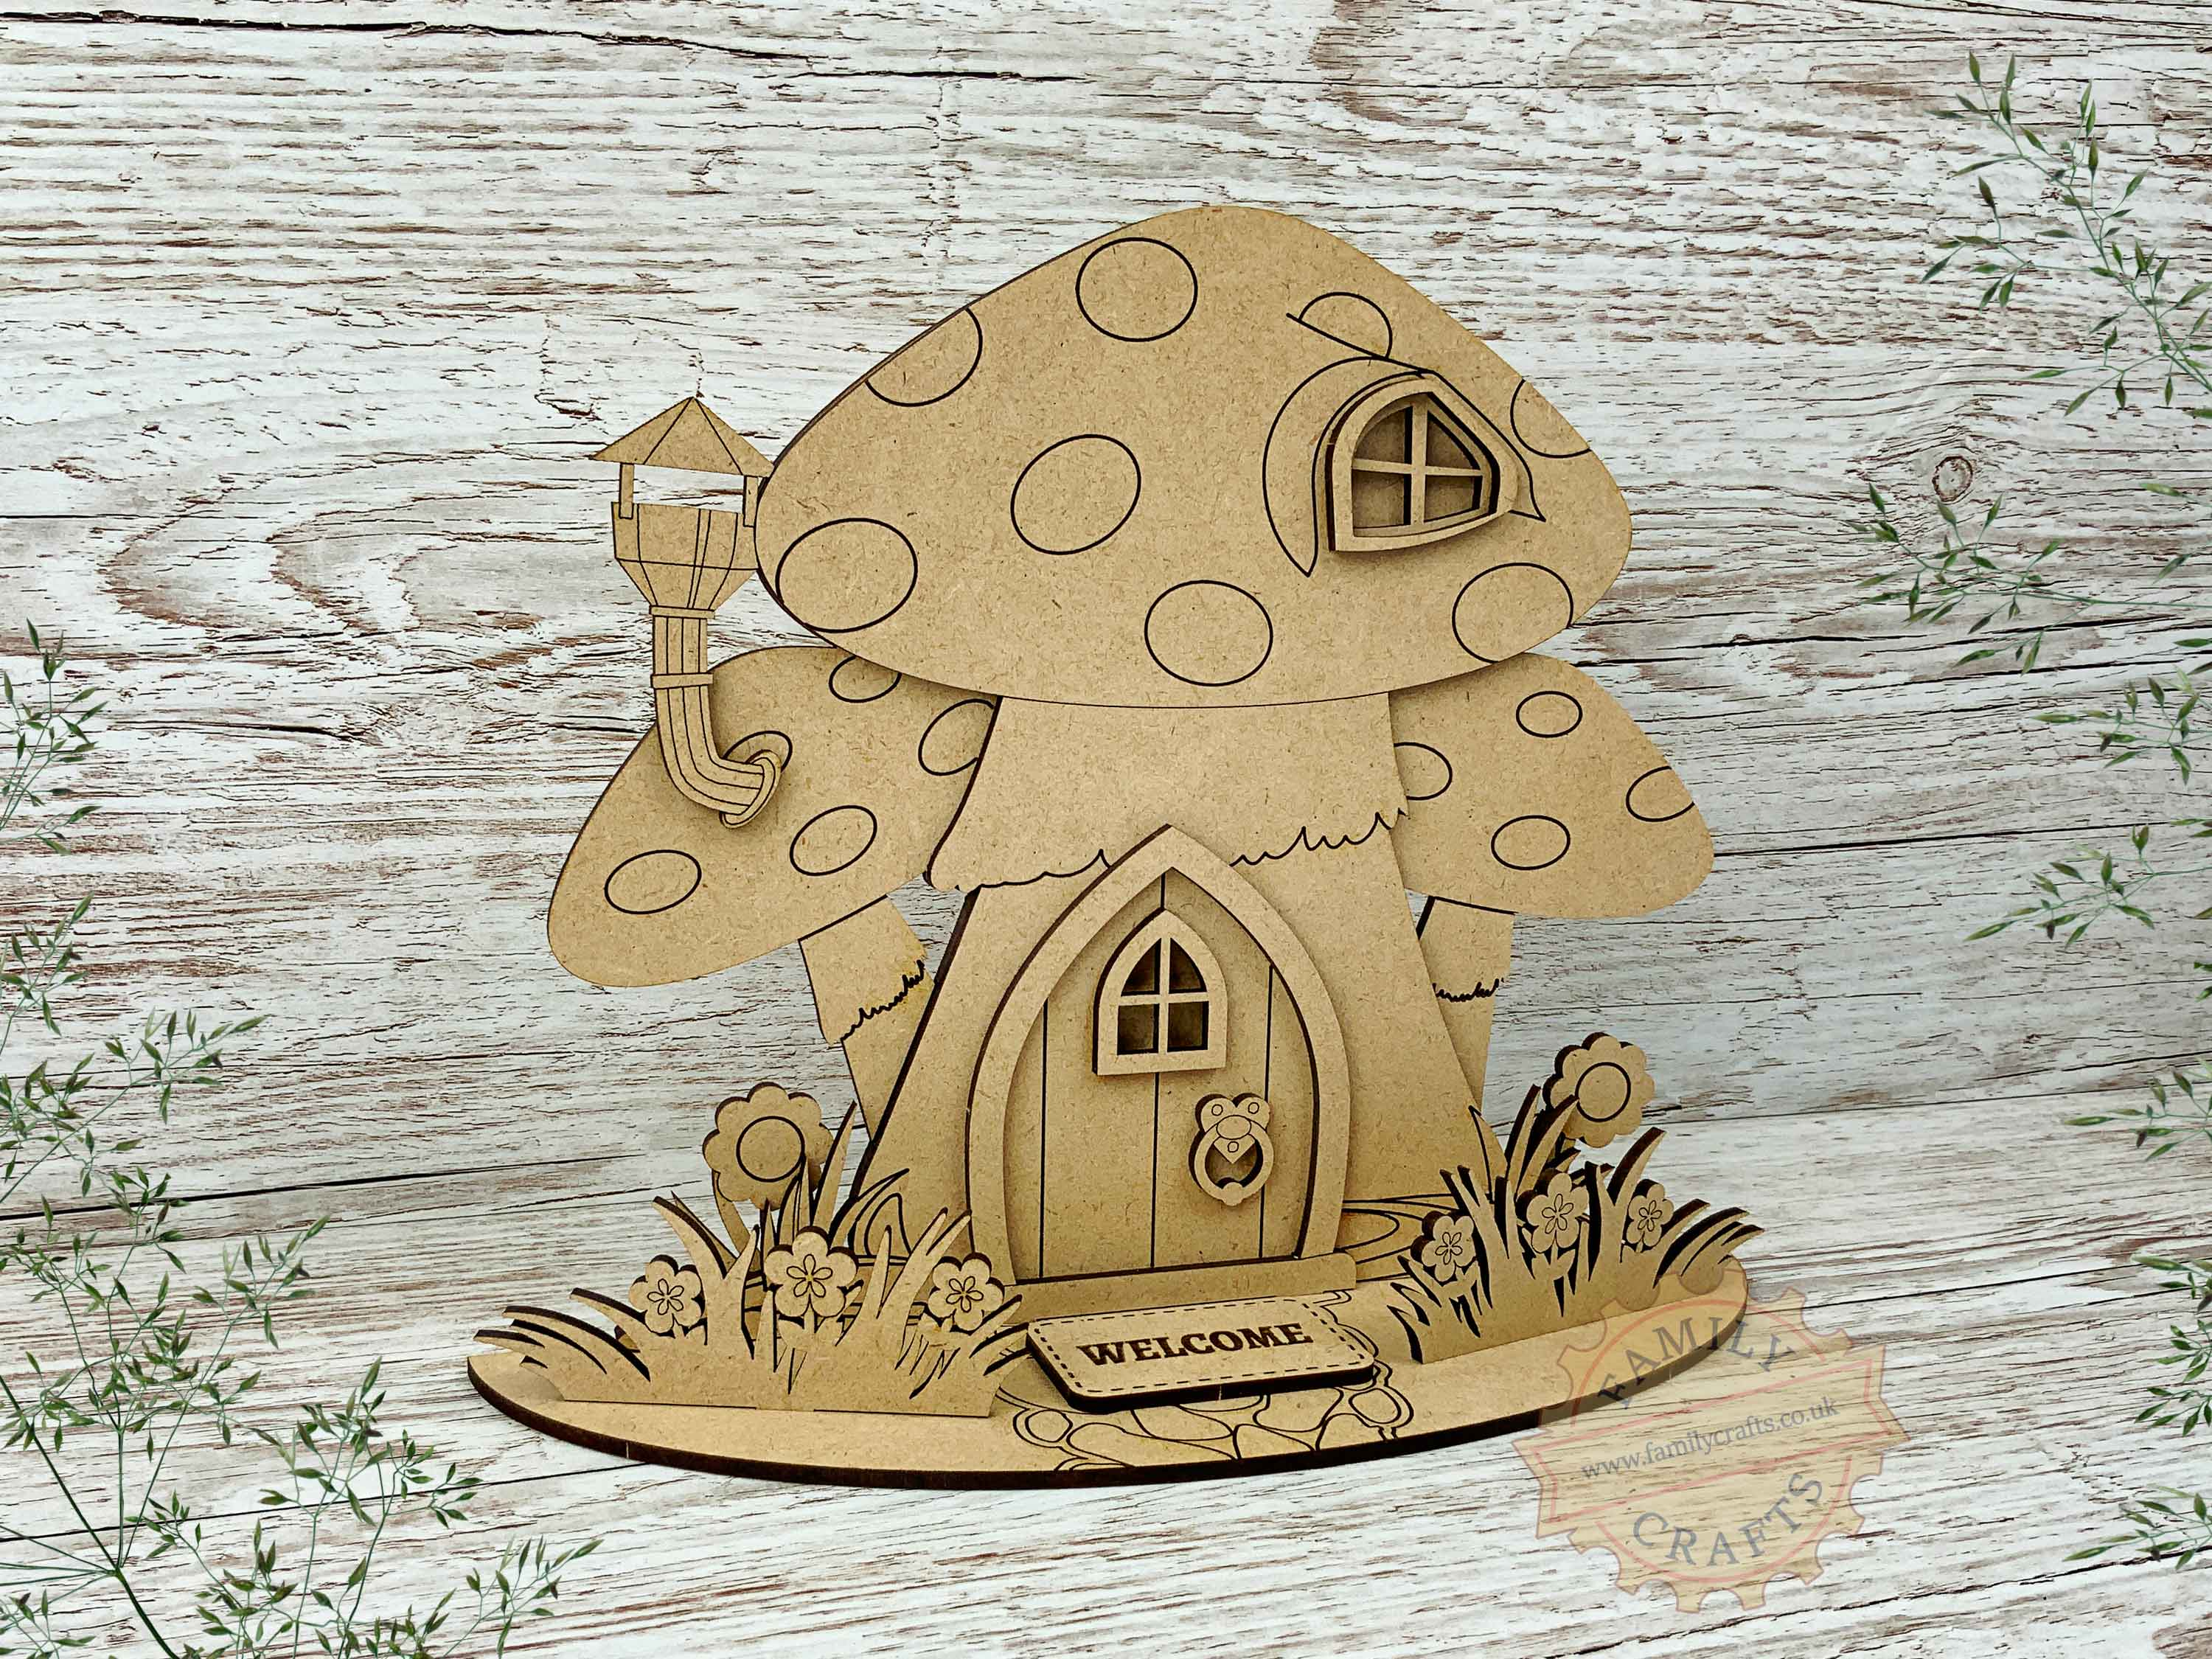 mushroom fairy house garden view left